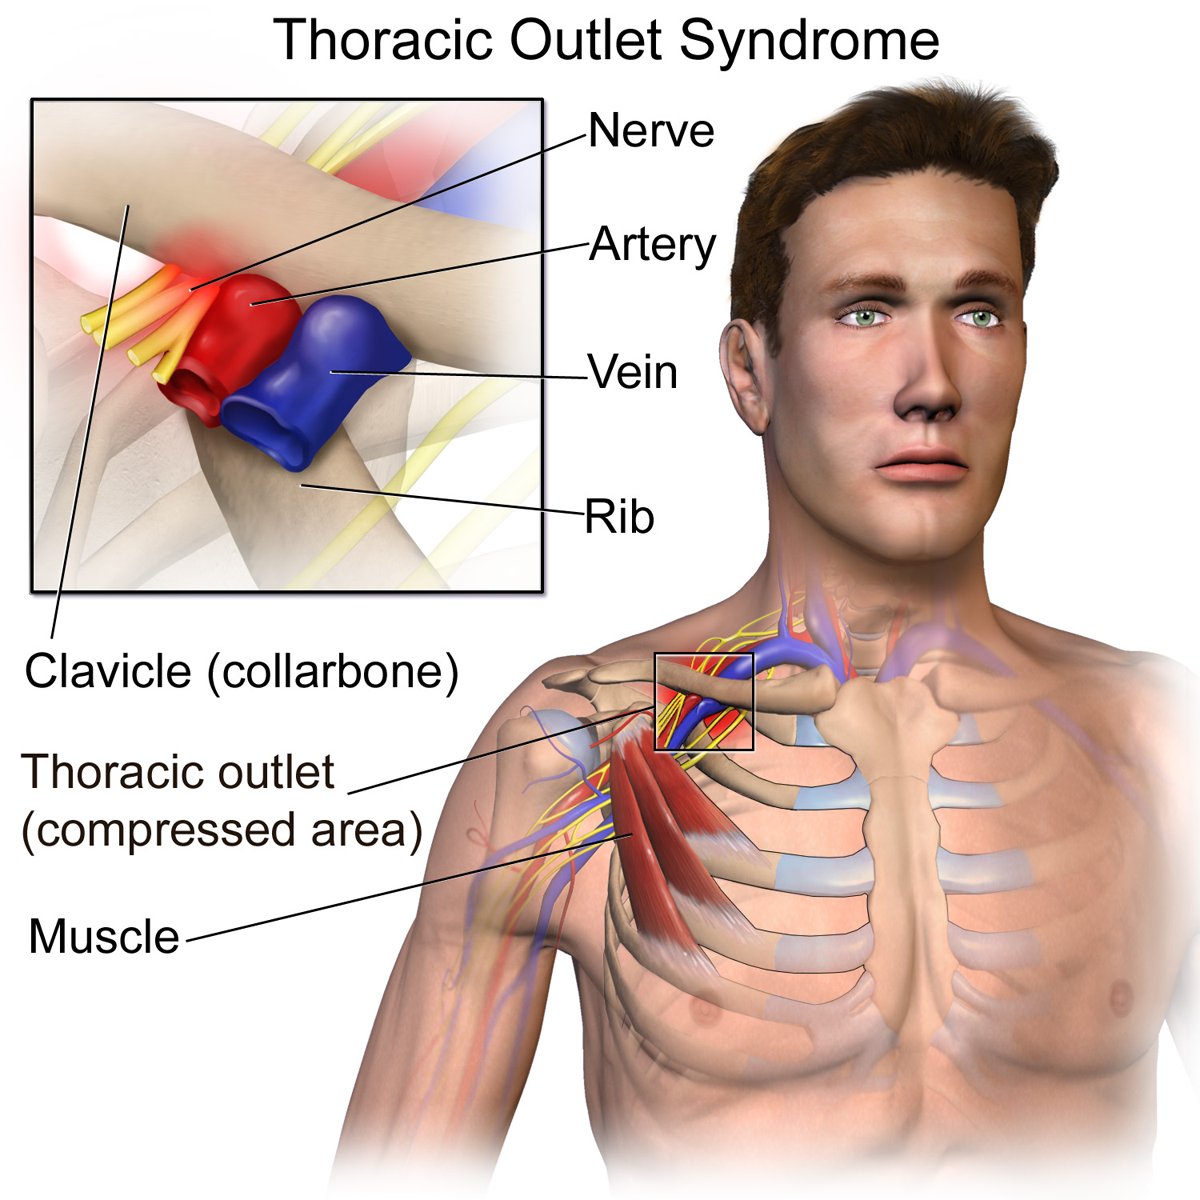 Thoracic Outlet Syndrome Burning Pain Between Your Spine